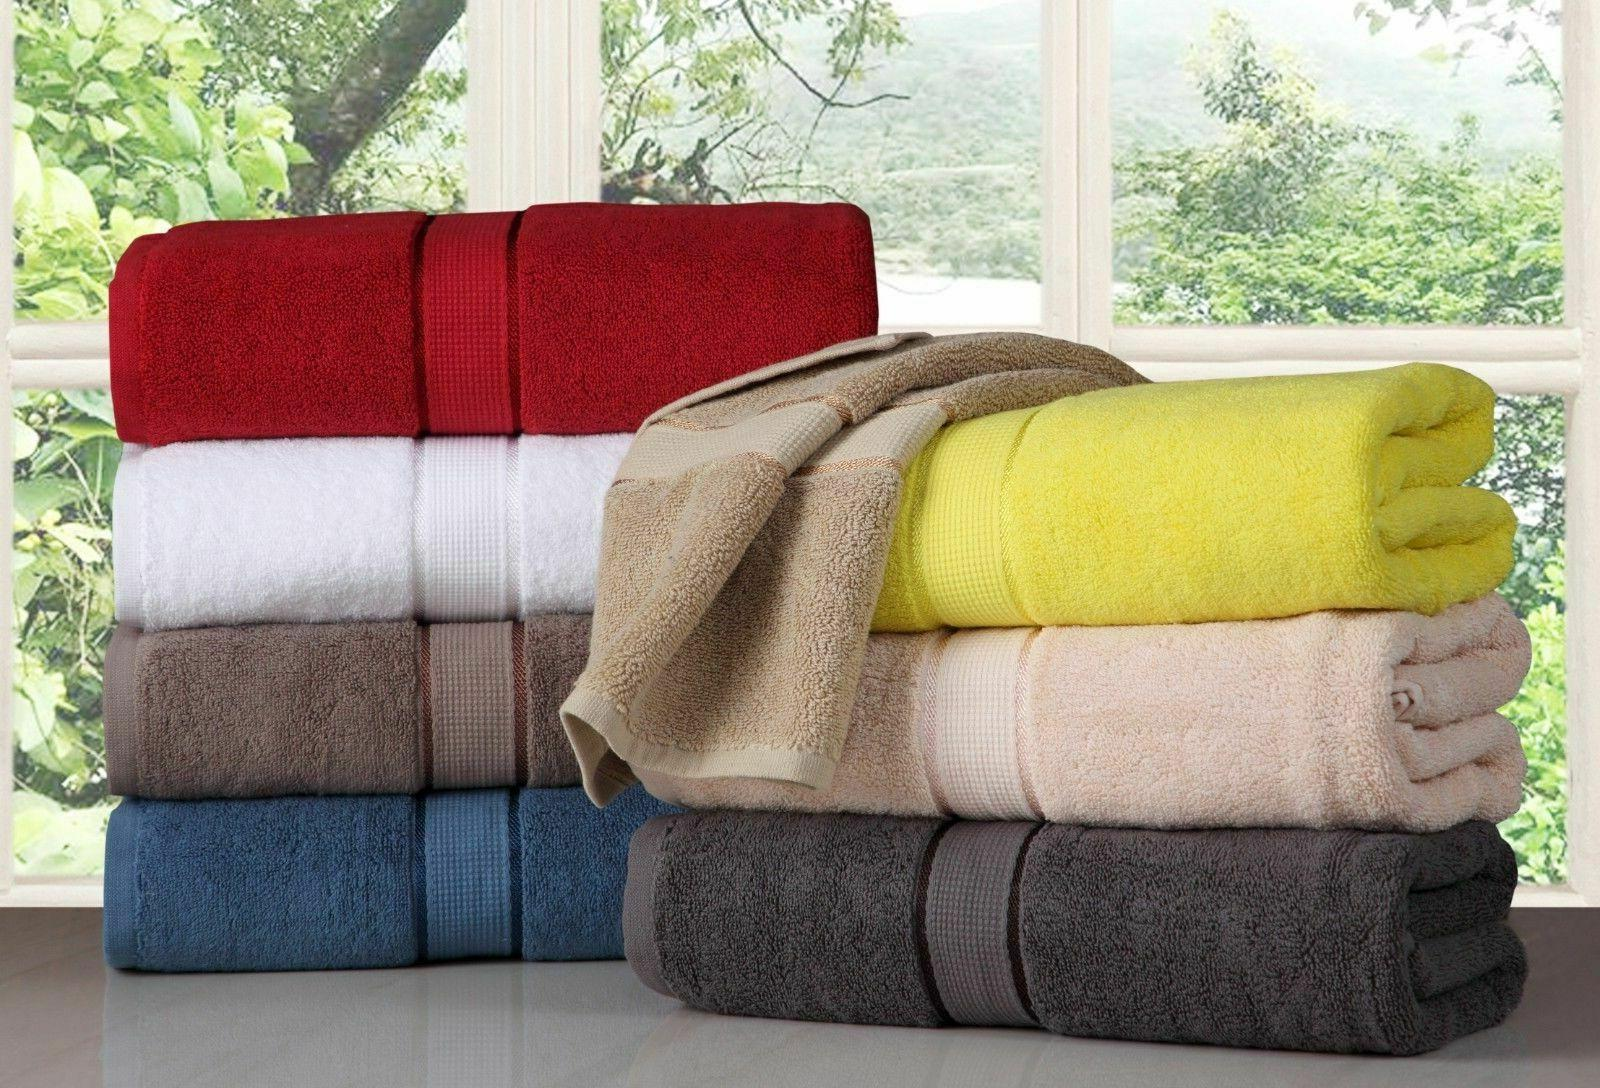 SPA - Collection 100% Cotton Towels Soft